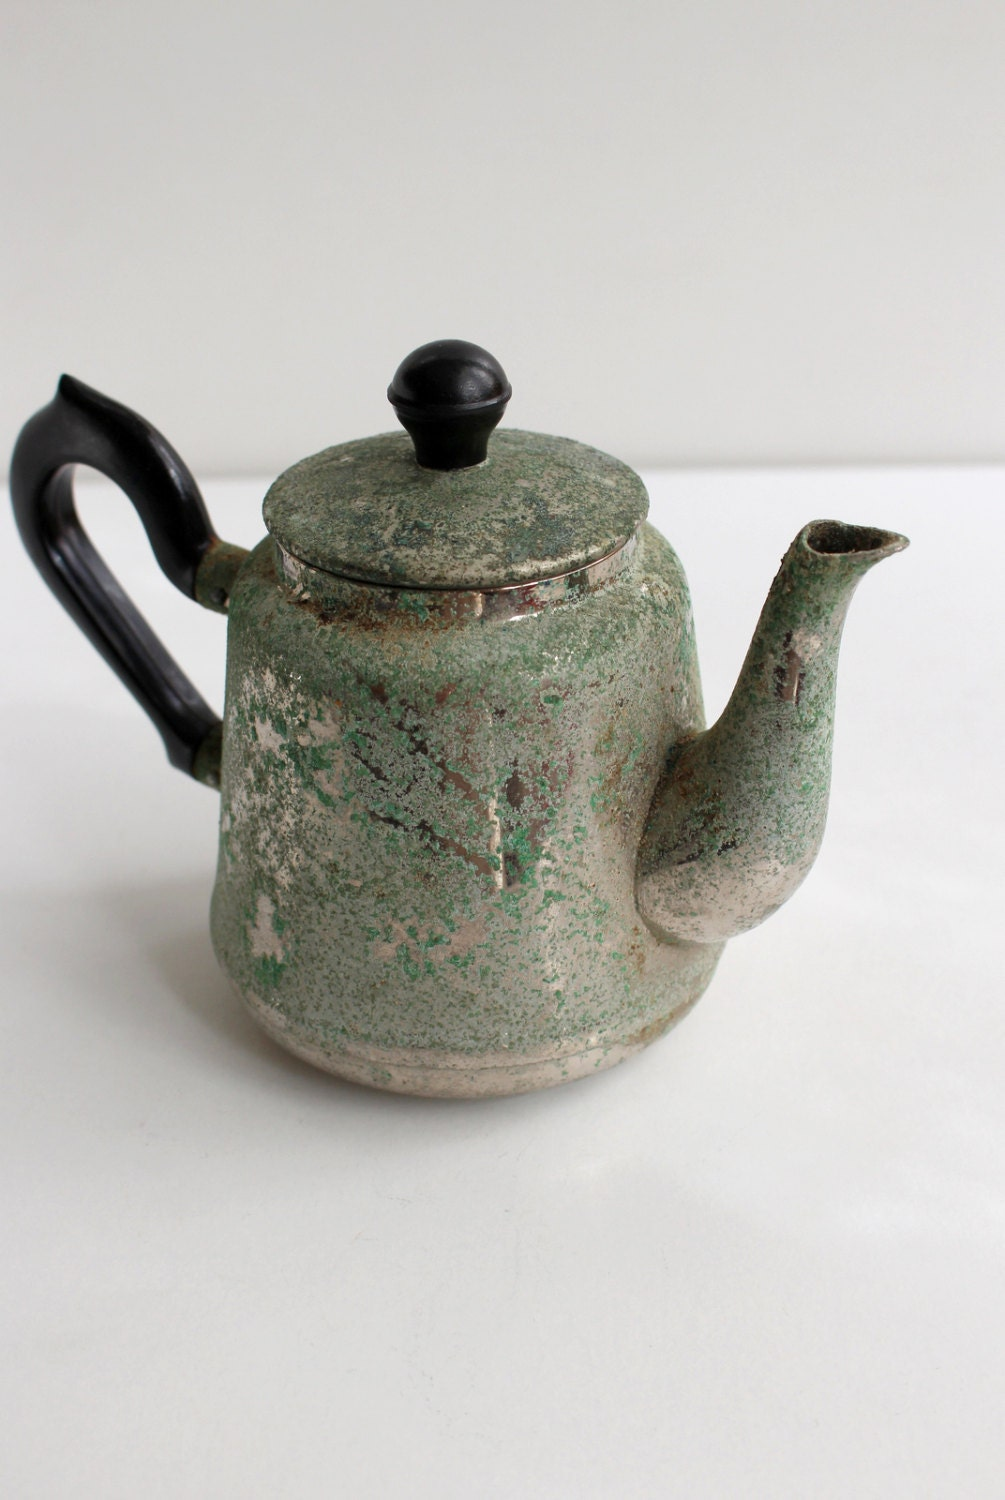 Soviet vintage metal teapot with lid stainless by